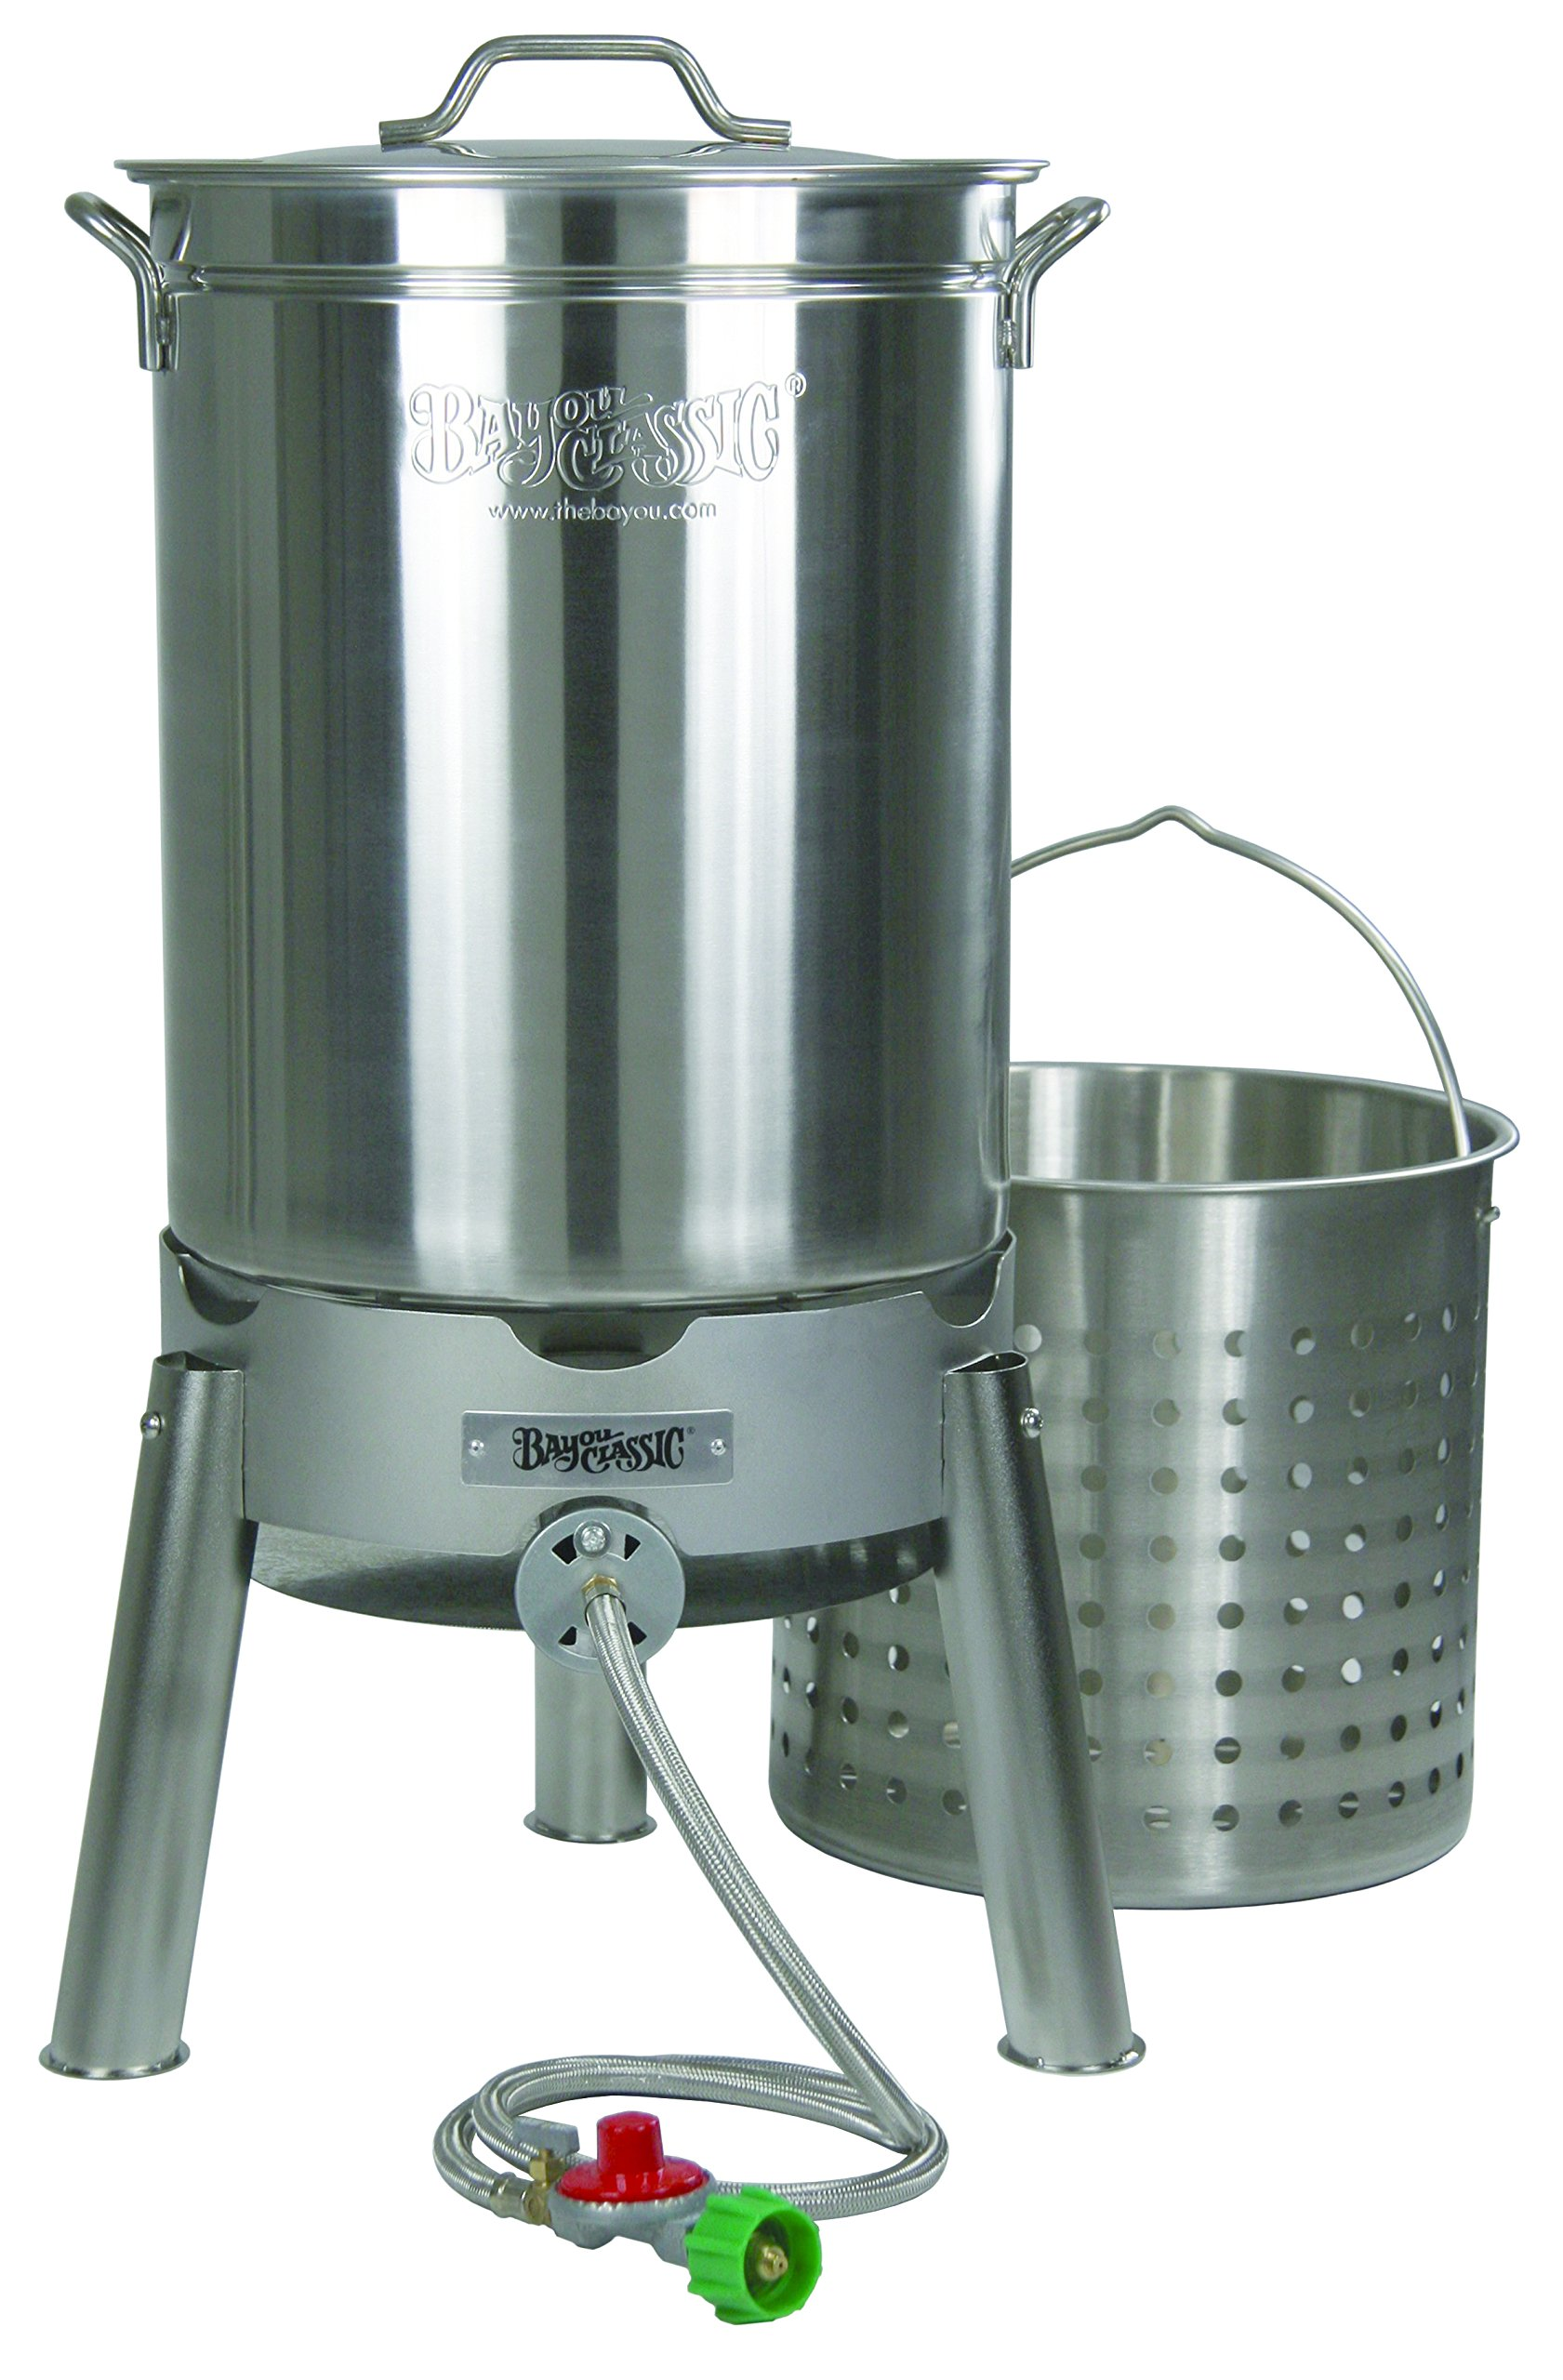 Bayou Classic KDS-144 44-Quart Stainless Steel Cooker Kit by Bayou Classic